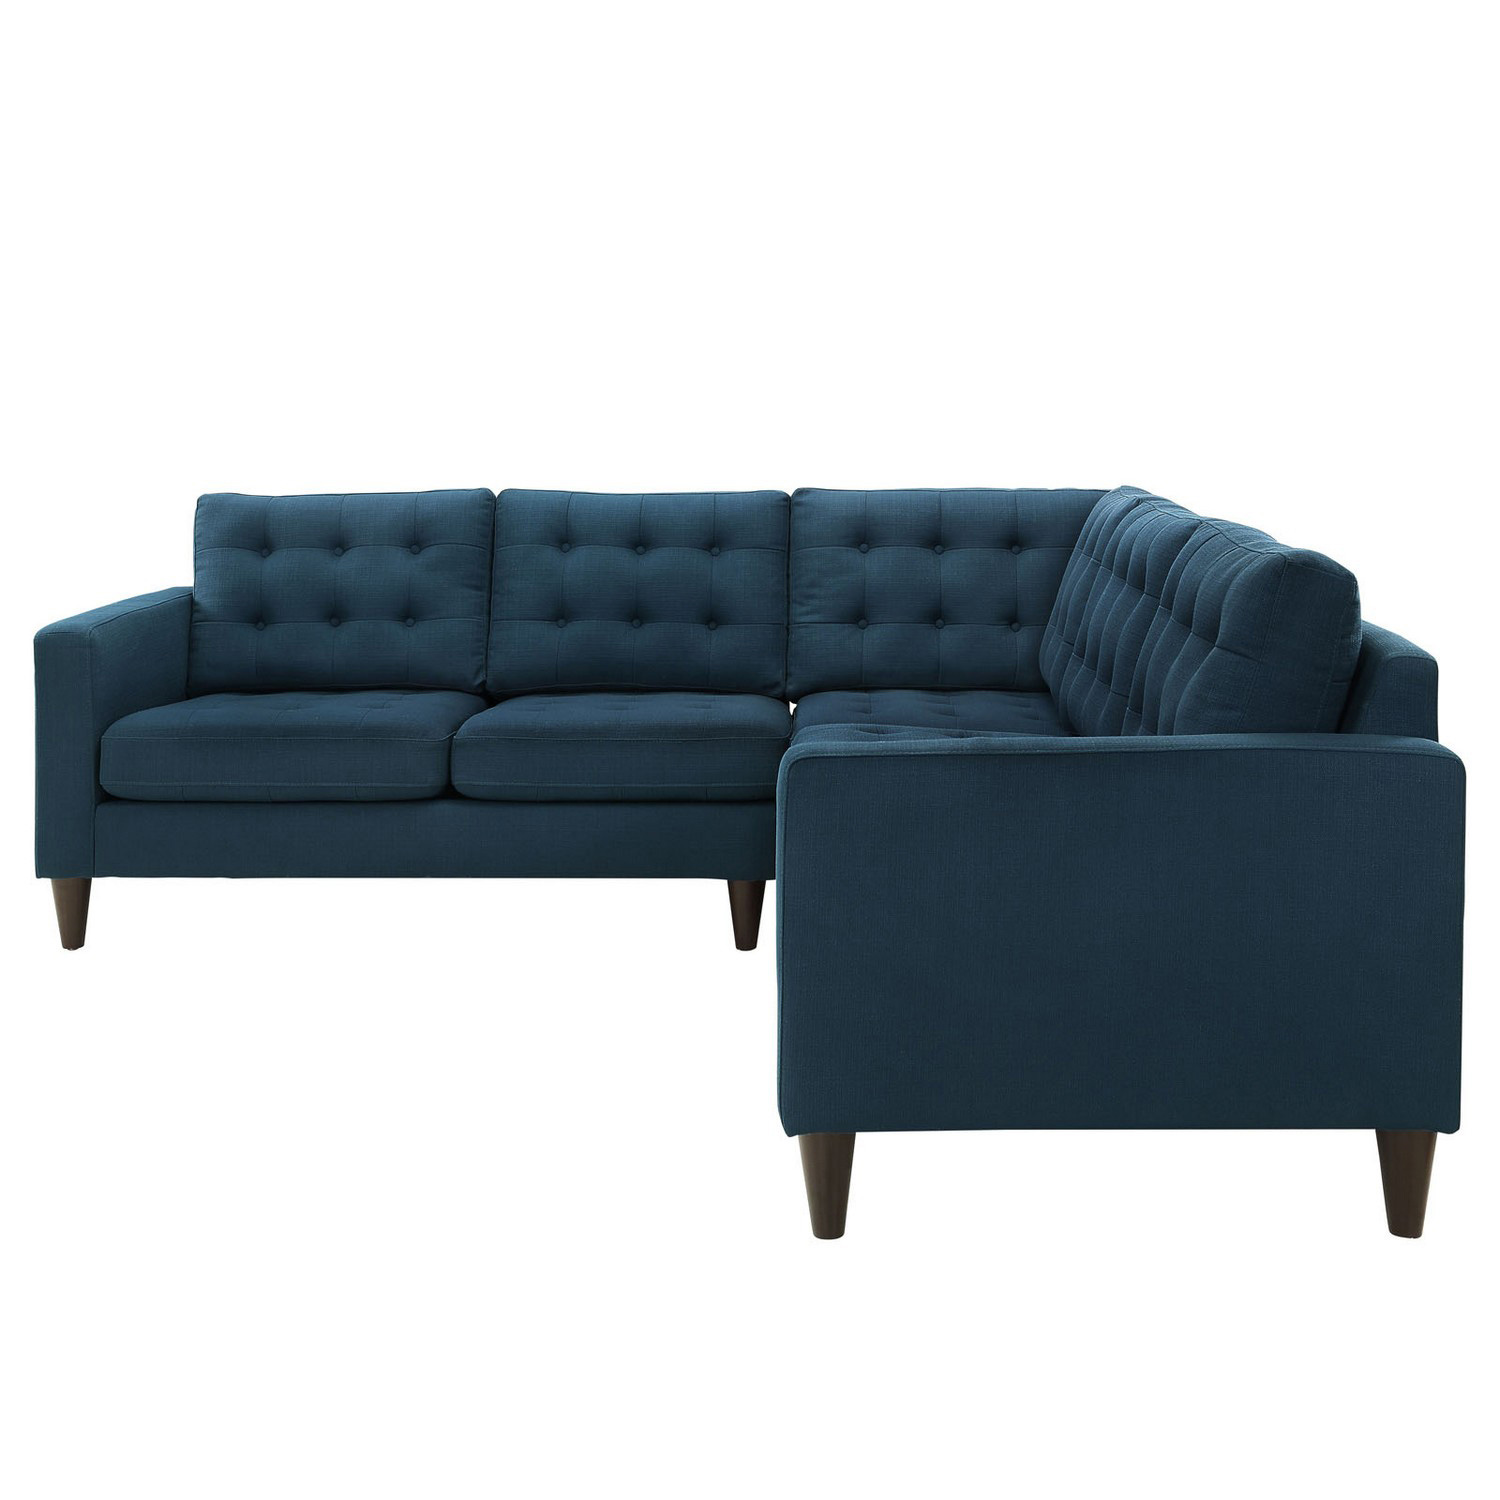 Modway Furniture Empress Navy Blue Fabric Sectional with Chaise